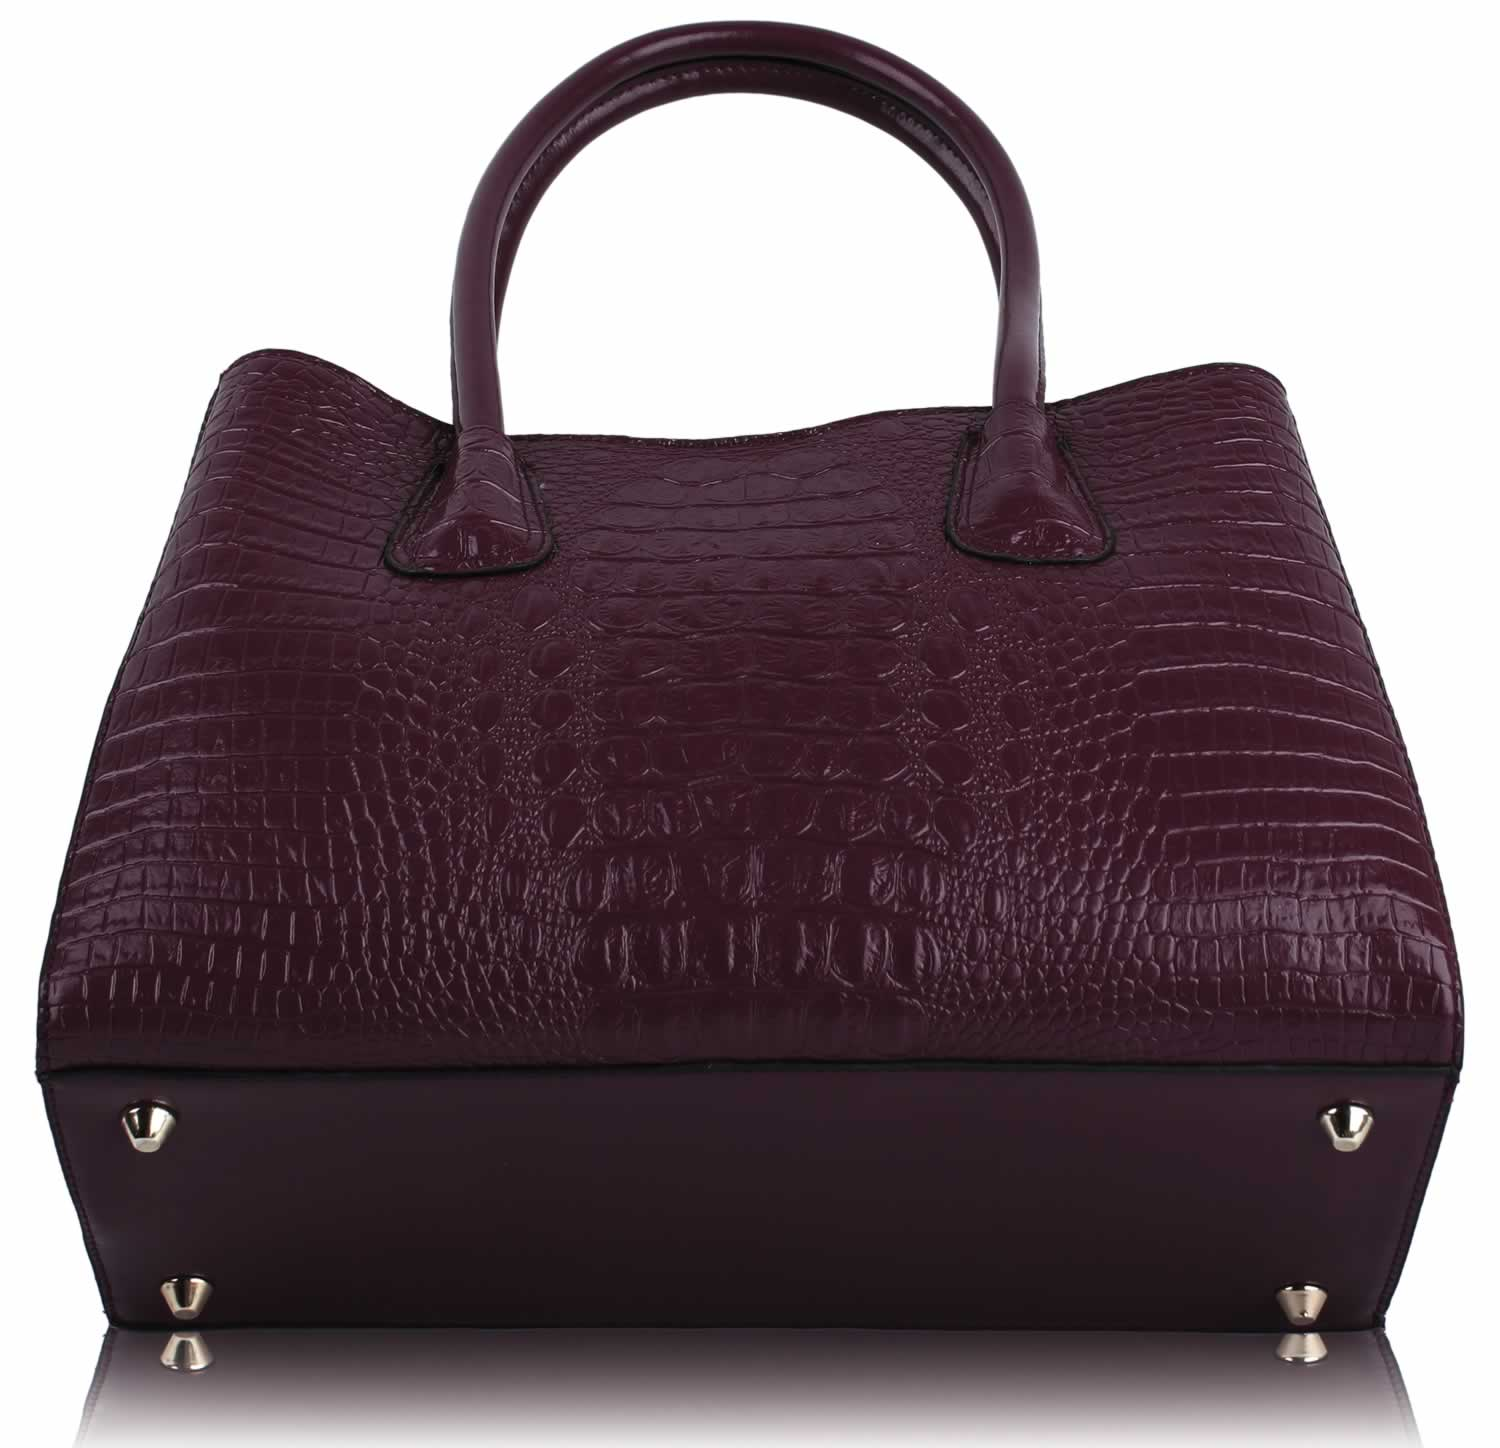 4848a179f0ff ladies-vintage-burgundy-red-faux-croc-leather-bag-womens-shoulder-handbag -kcmode- 3 -45070-p